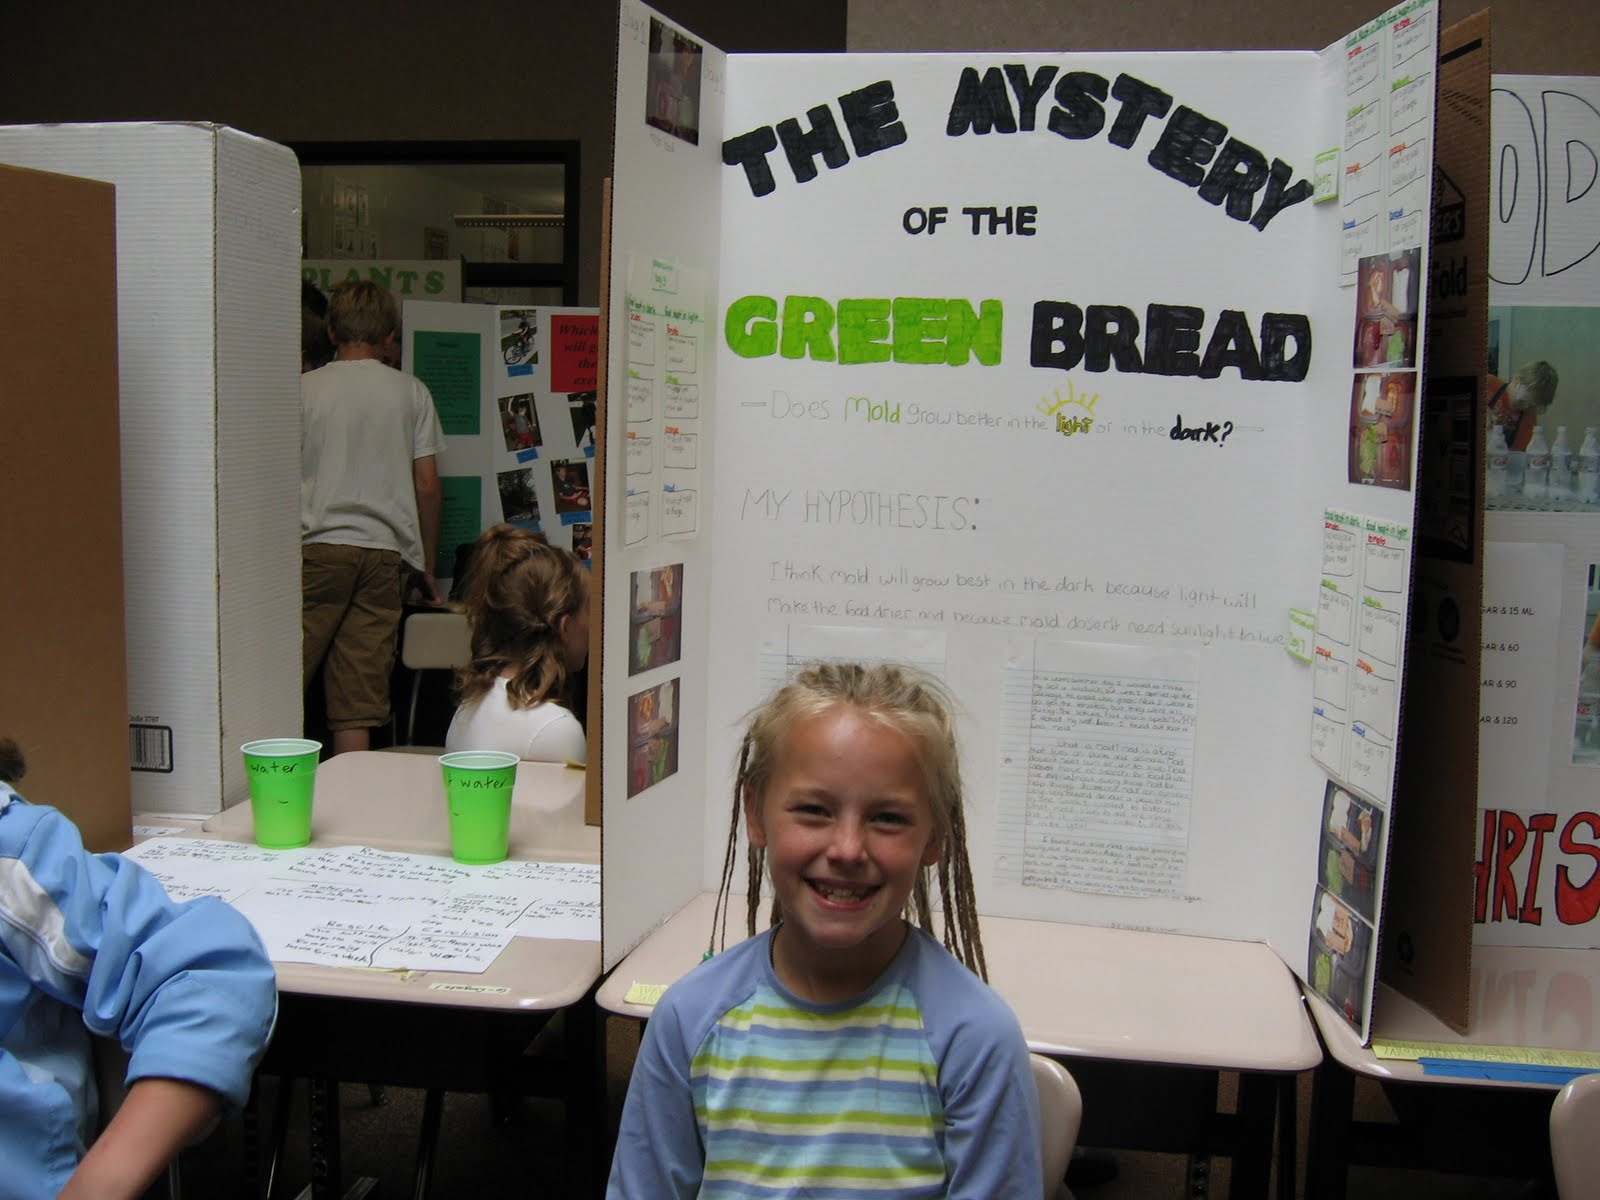 Fifth Grade Science Fair Project Ideas Over 2000 Free - oc